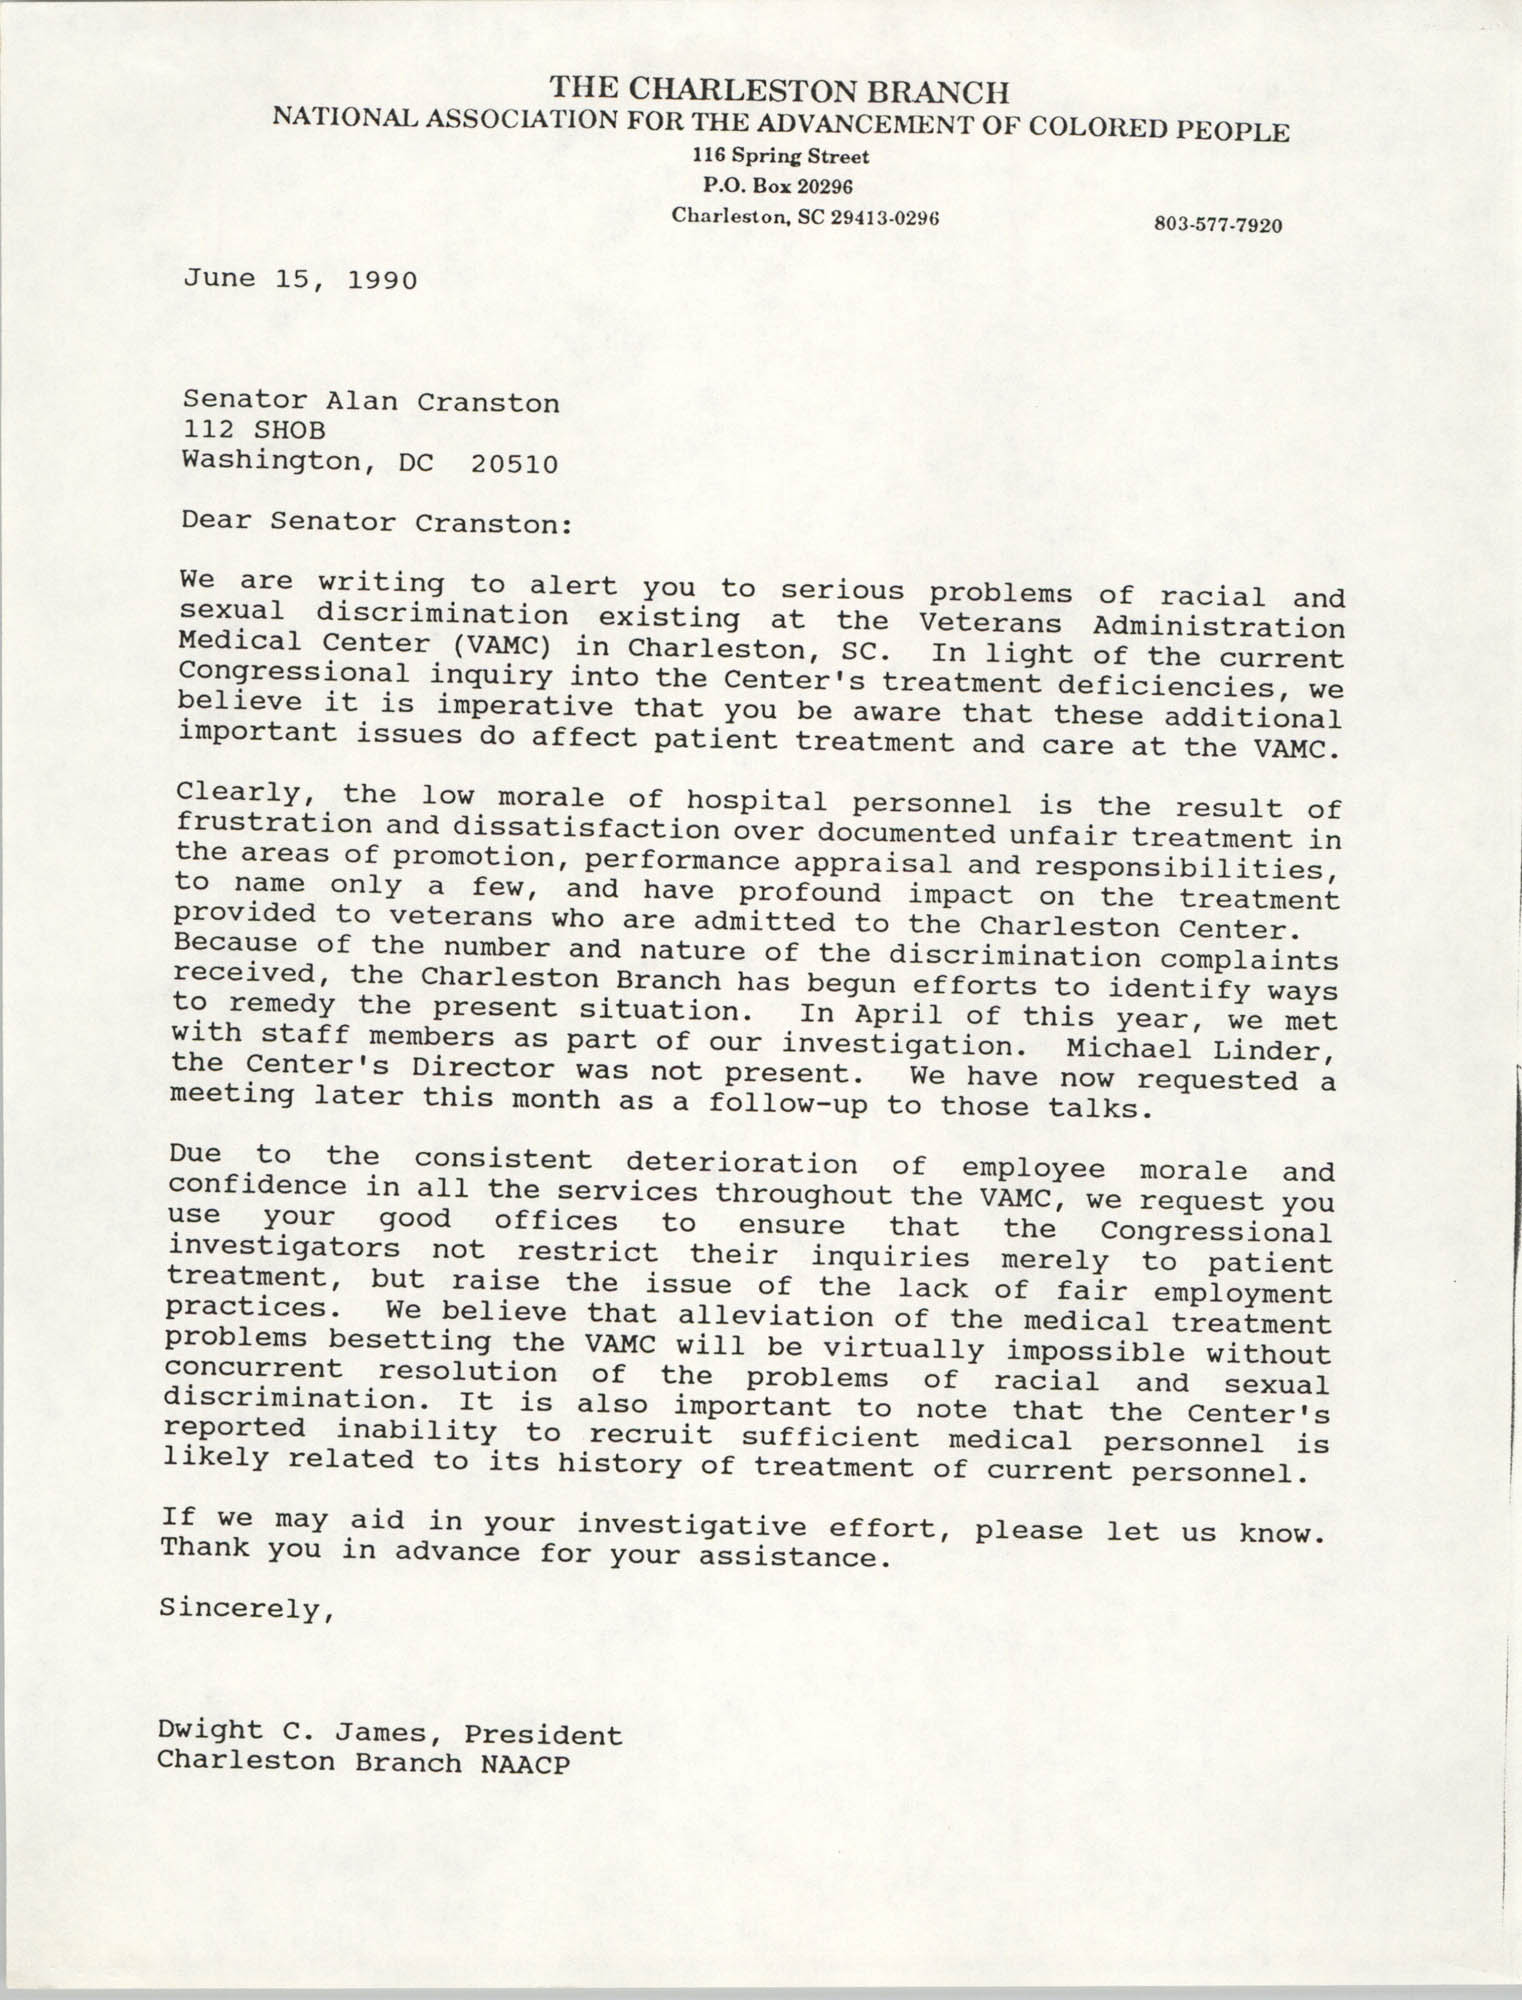 Letter from Dwight C. James to Alan Cranston, June 15, 1990